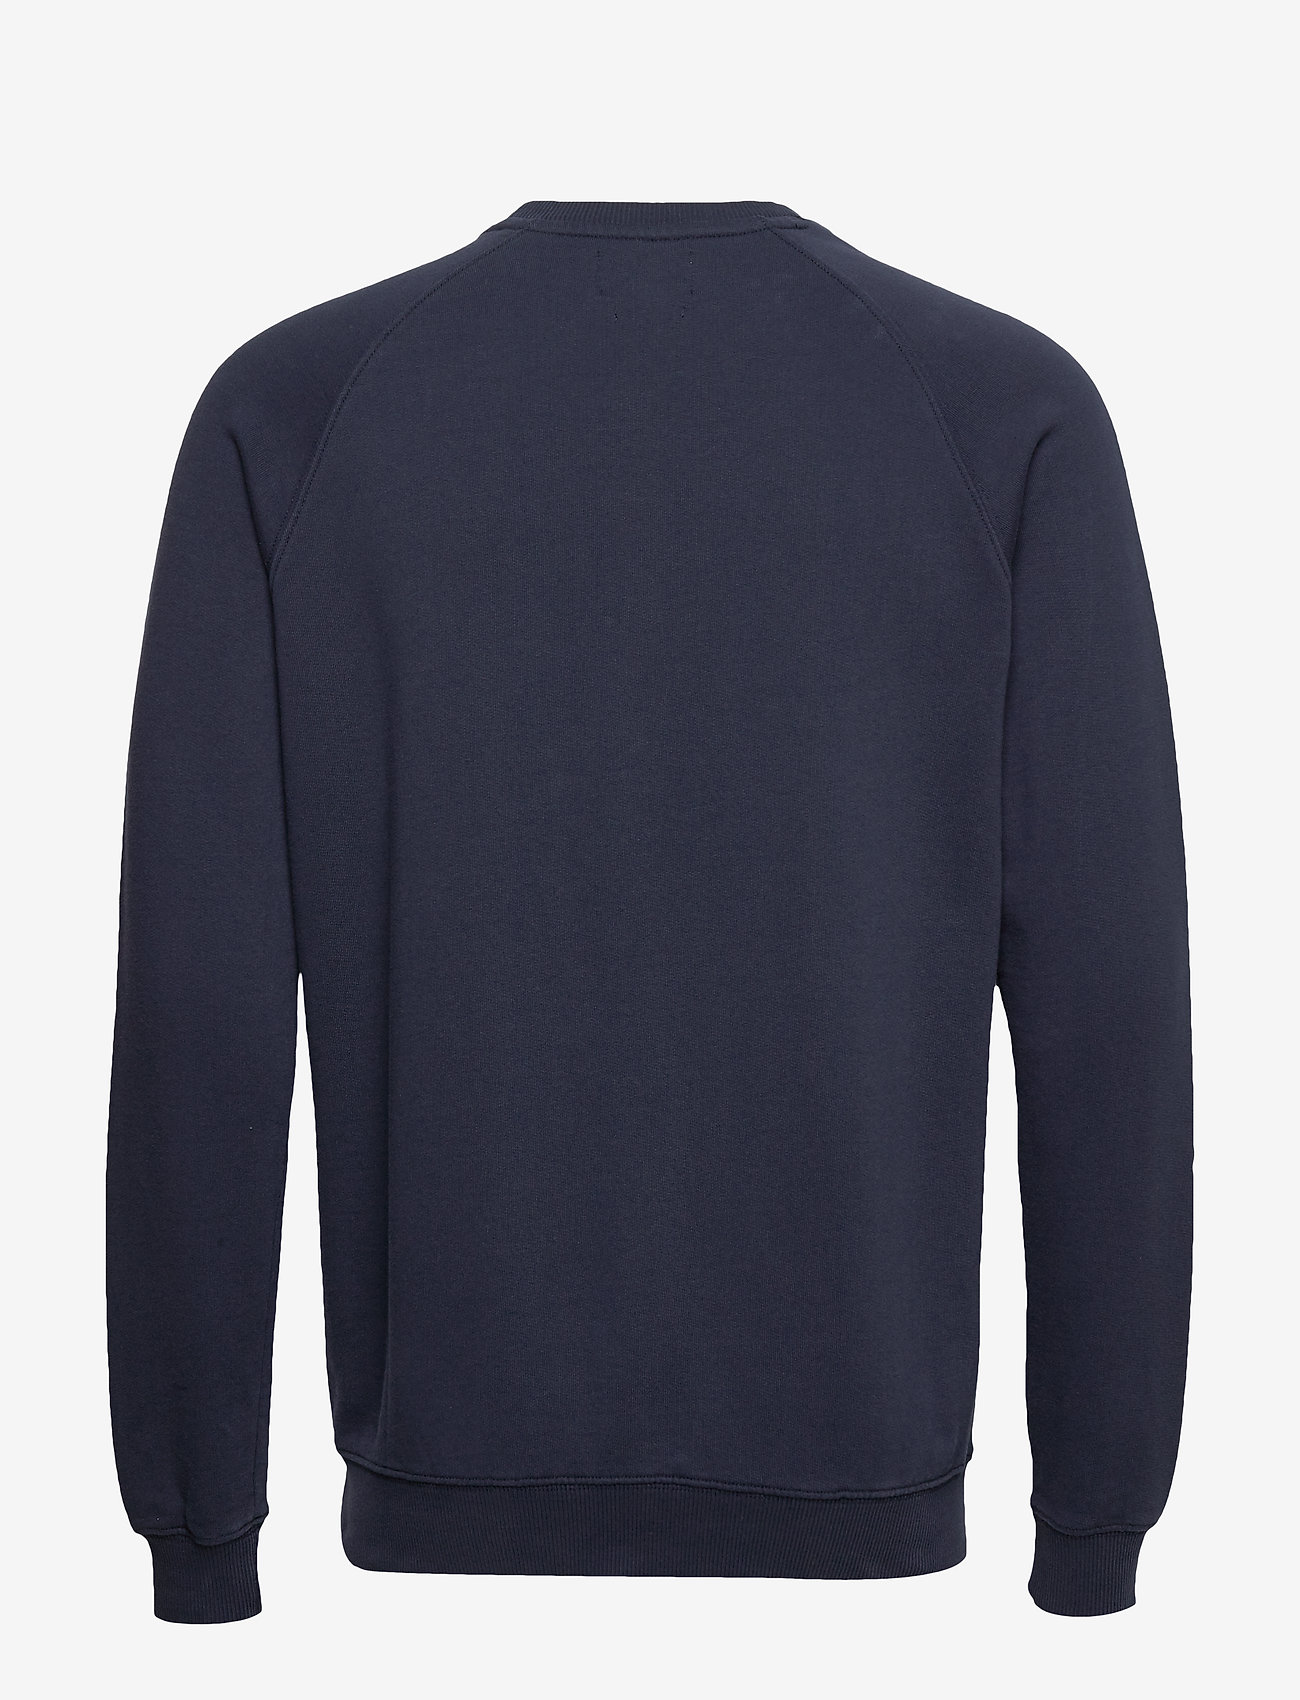 Forét - SPRUCE SWEATSHIRT - sweatshirts - midnight blue/red - 1